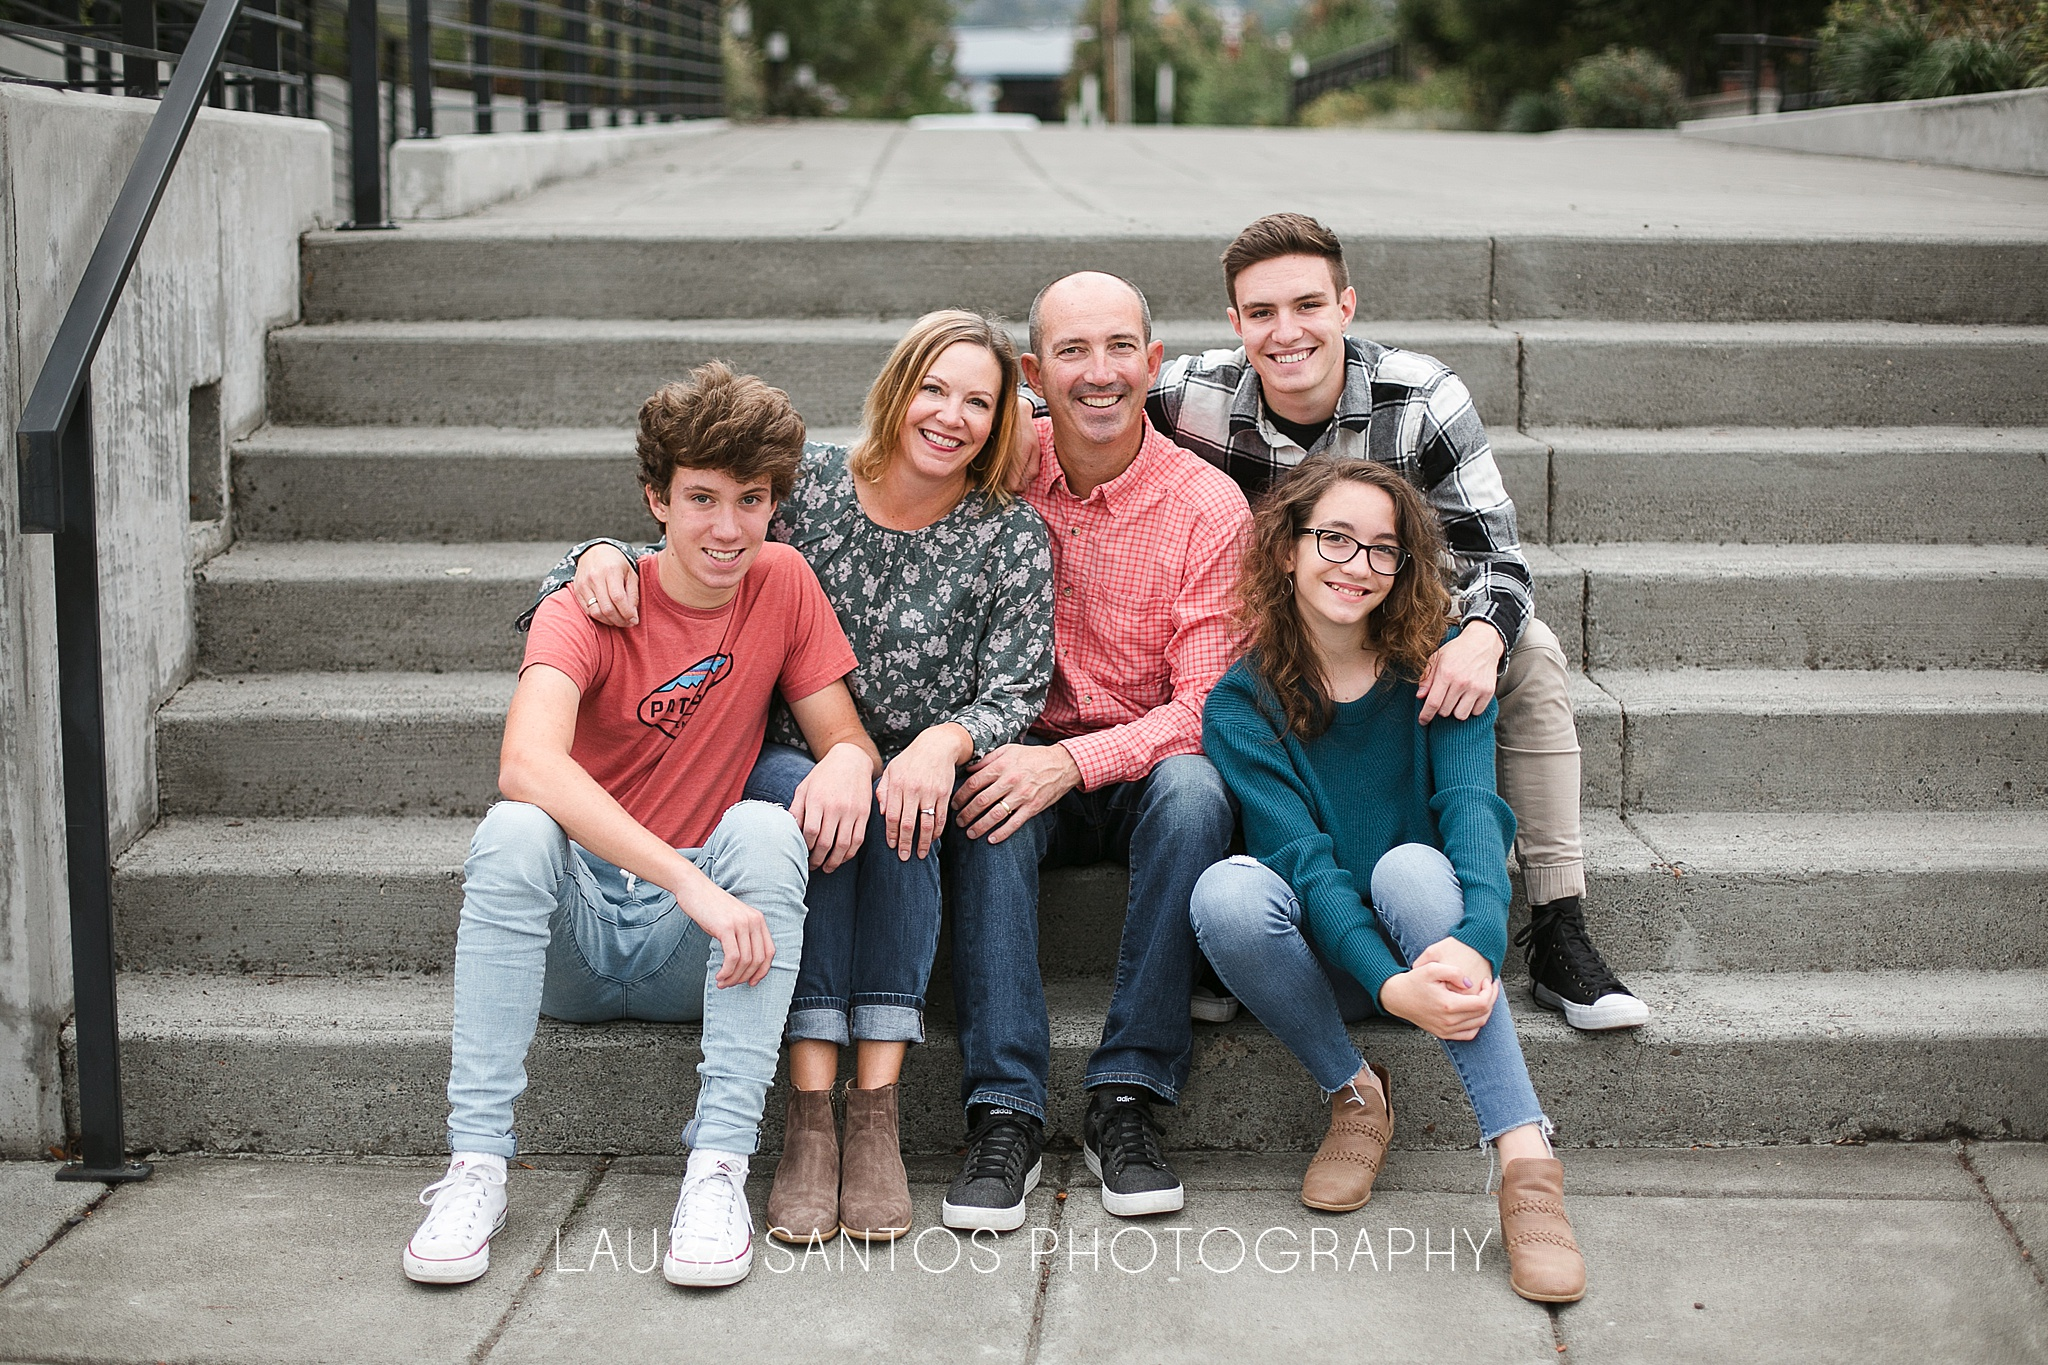 Laura Santos Photography Portland Oregon Family Photographer_0795.jpg